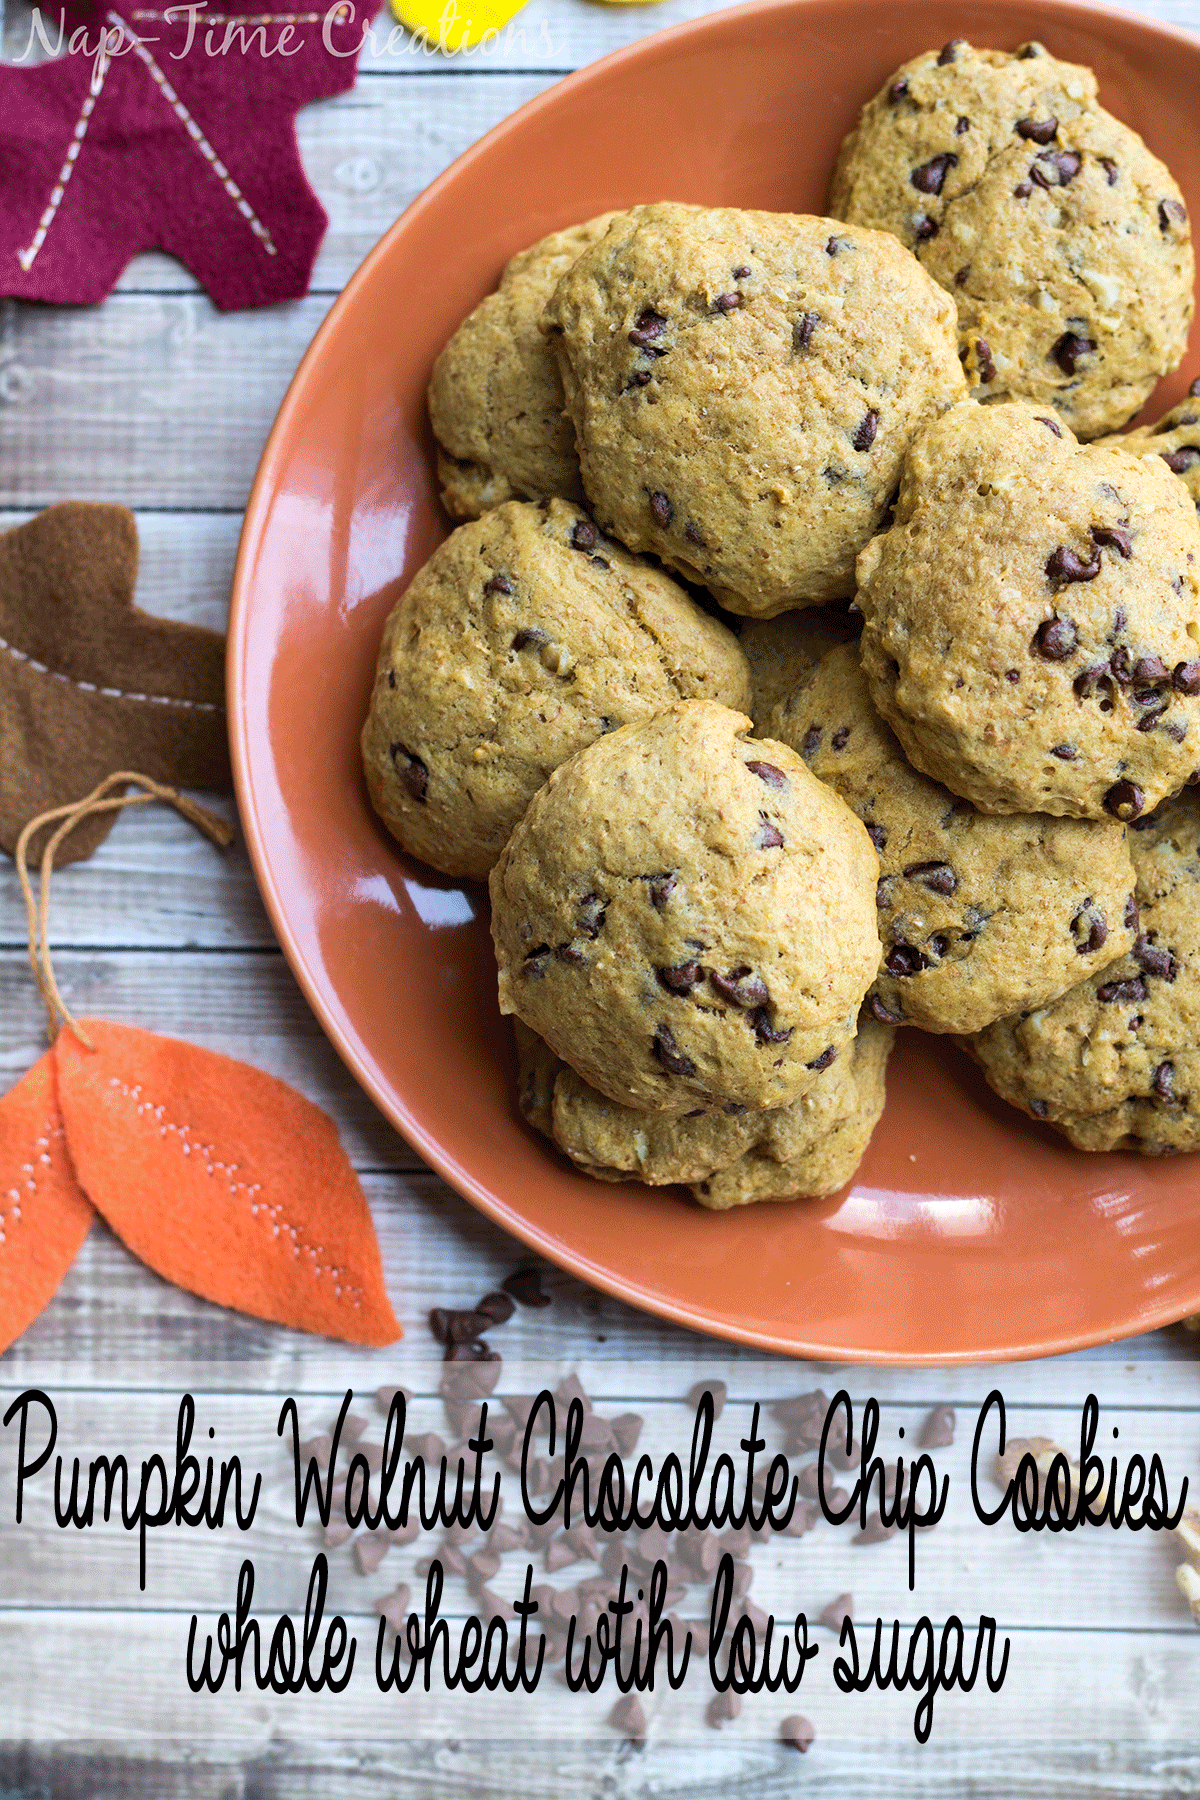 Pumpkin Walnut Cookies With whole wheat and low sugar from Life Sew Savory